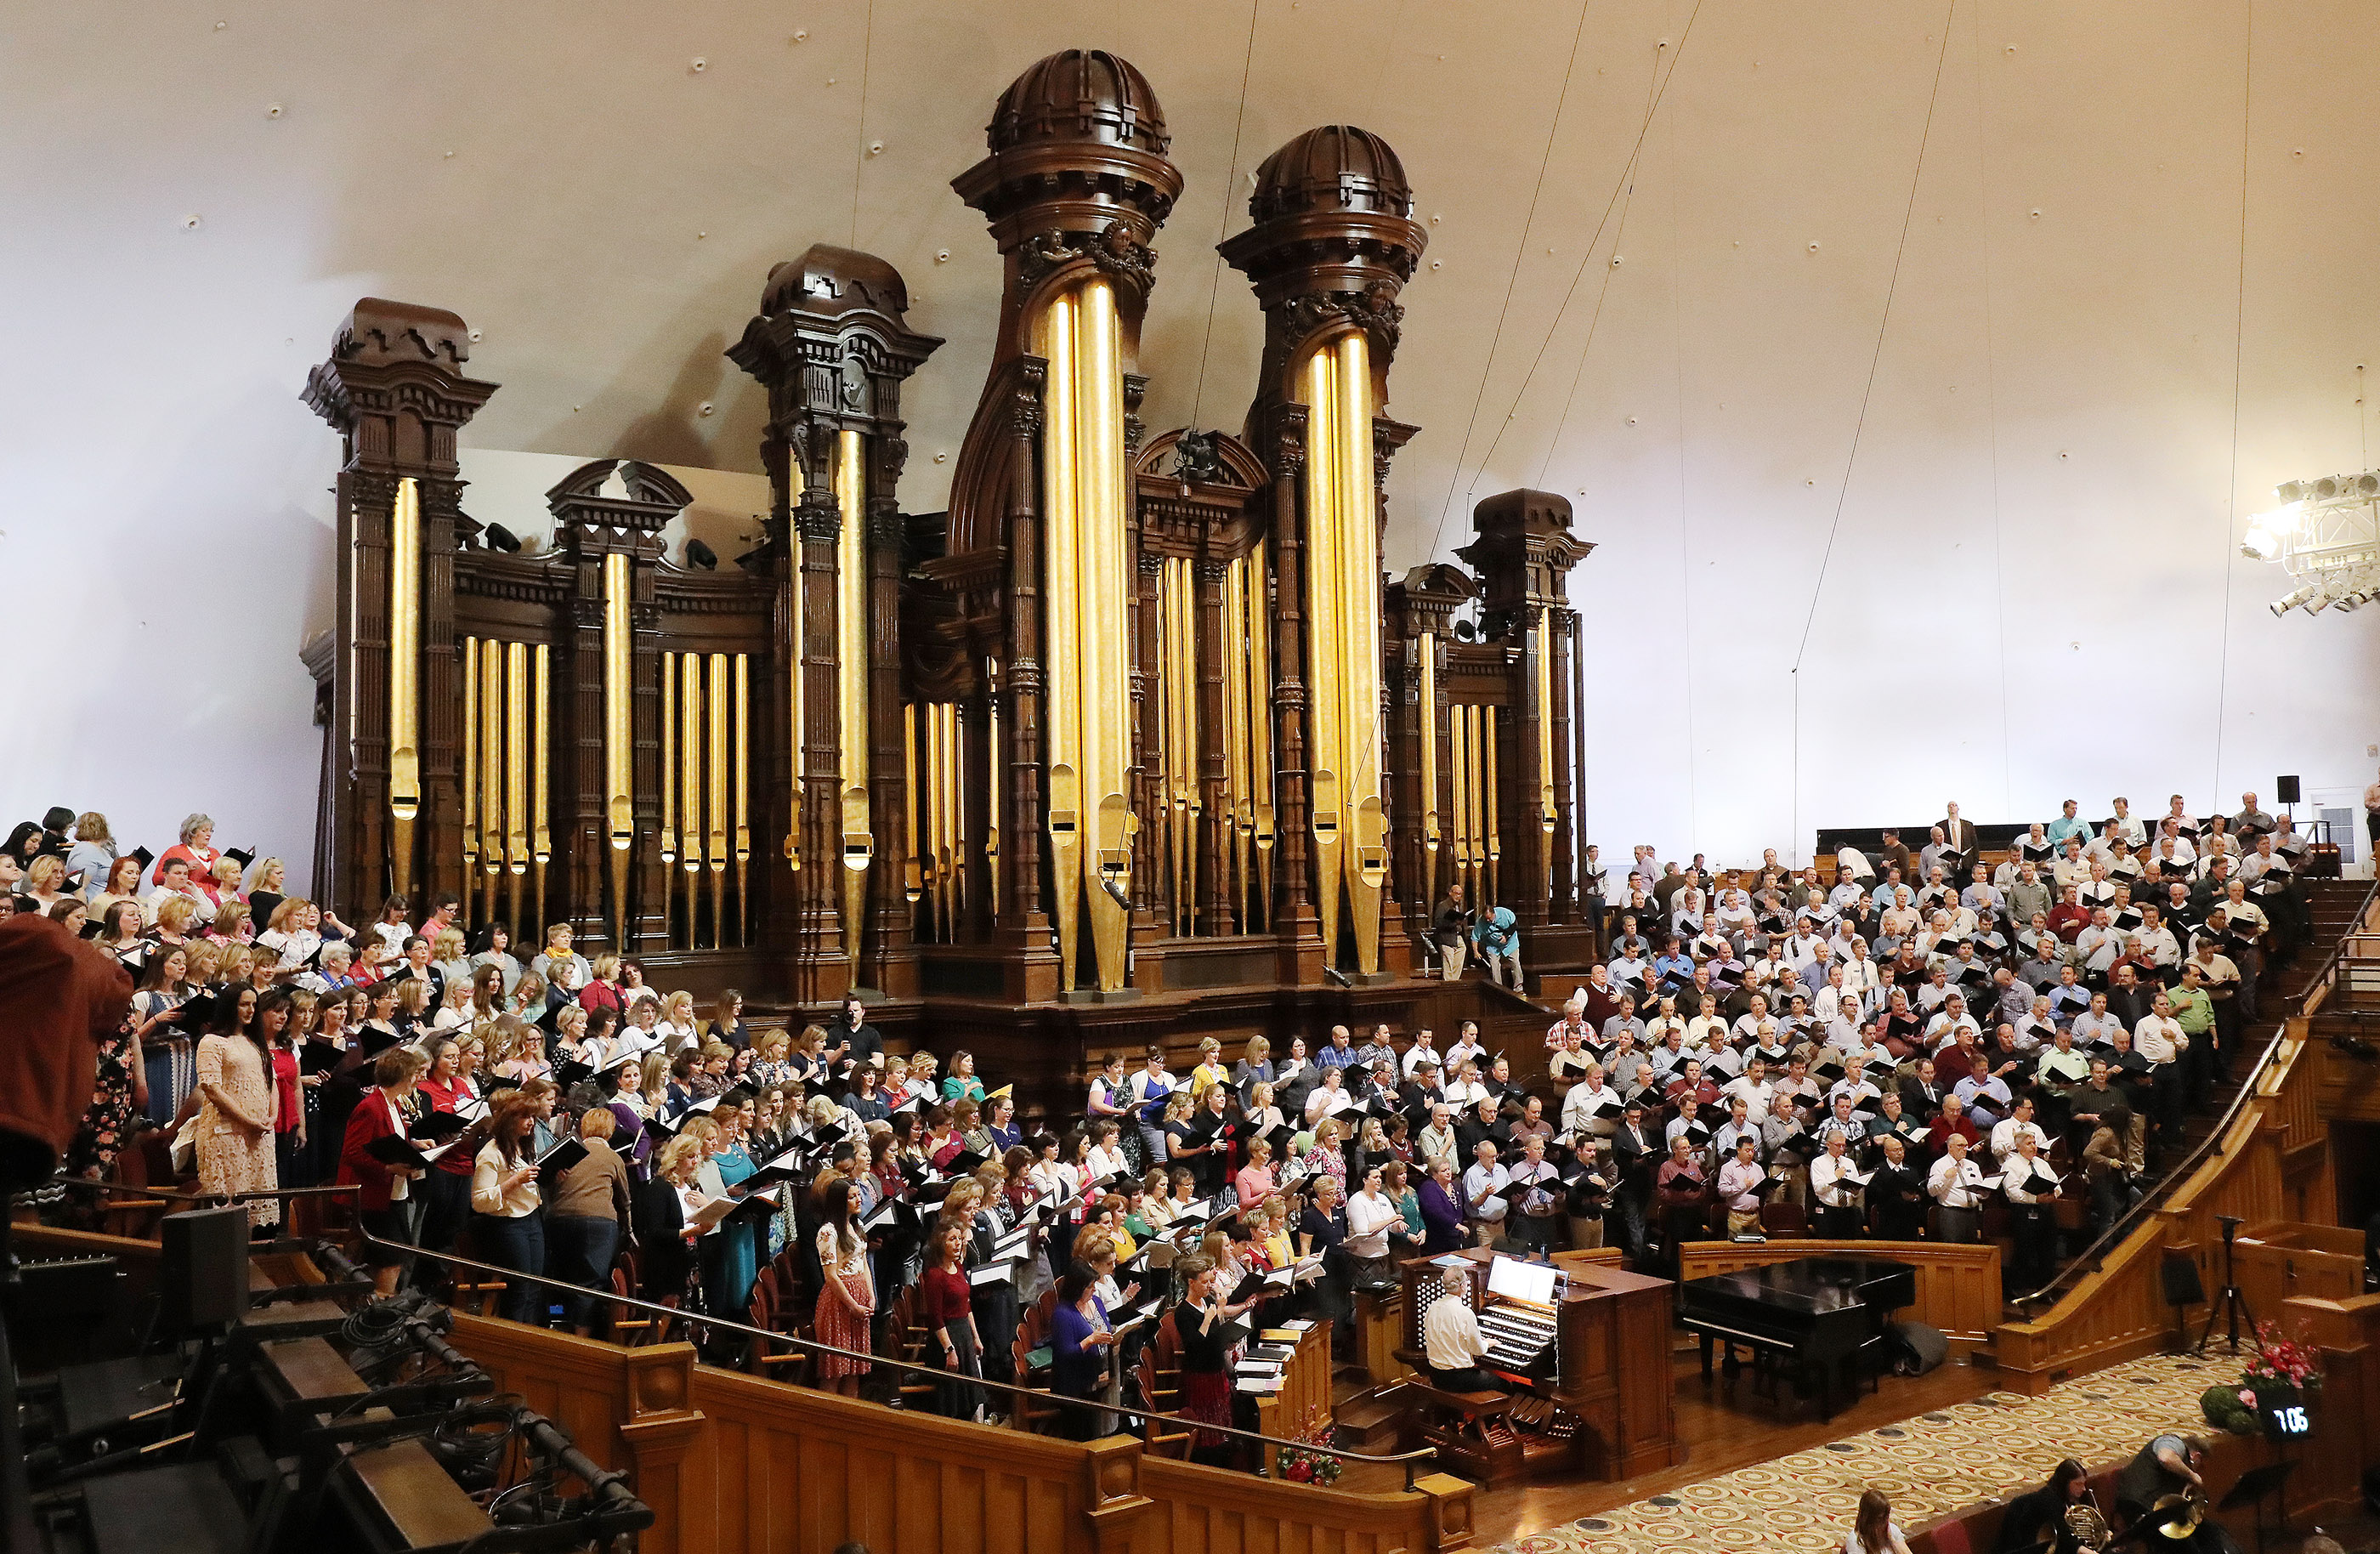 The Tabernacle Choir at Temple Square rehearse in Salt Lake City on Thursday, April 11, 2019. Four people were selected through social media to sing with the choir.